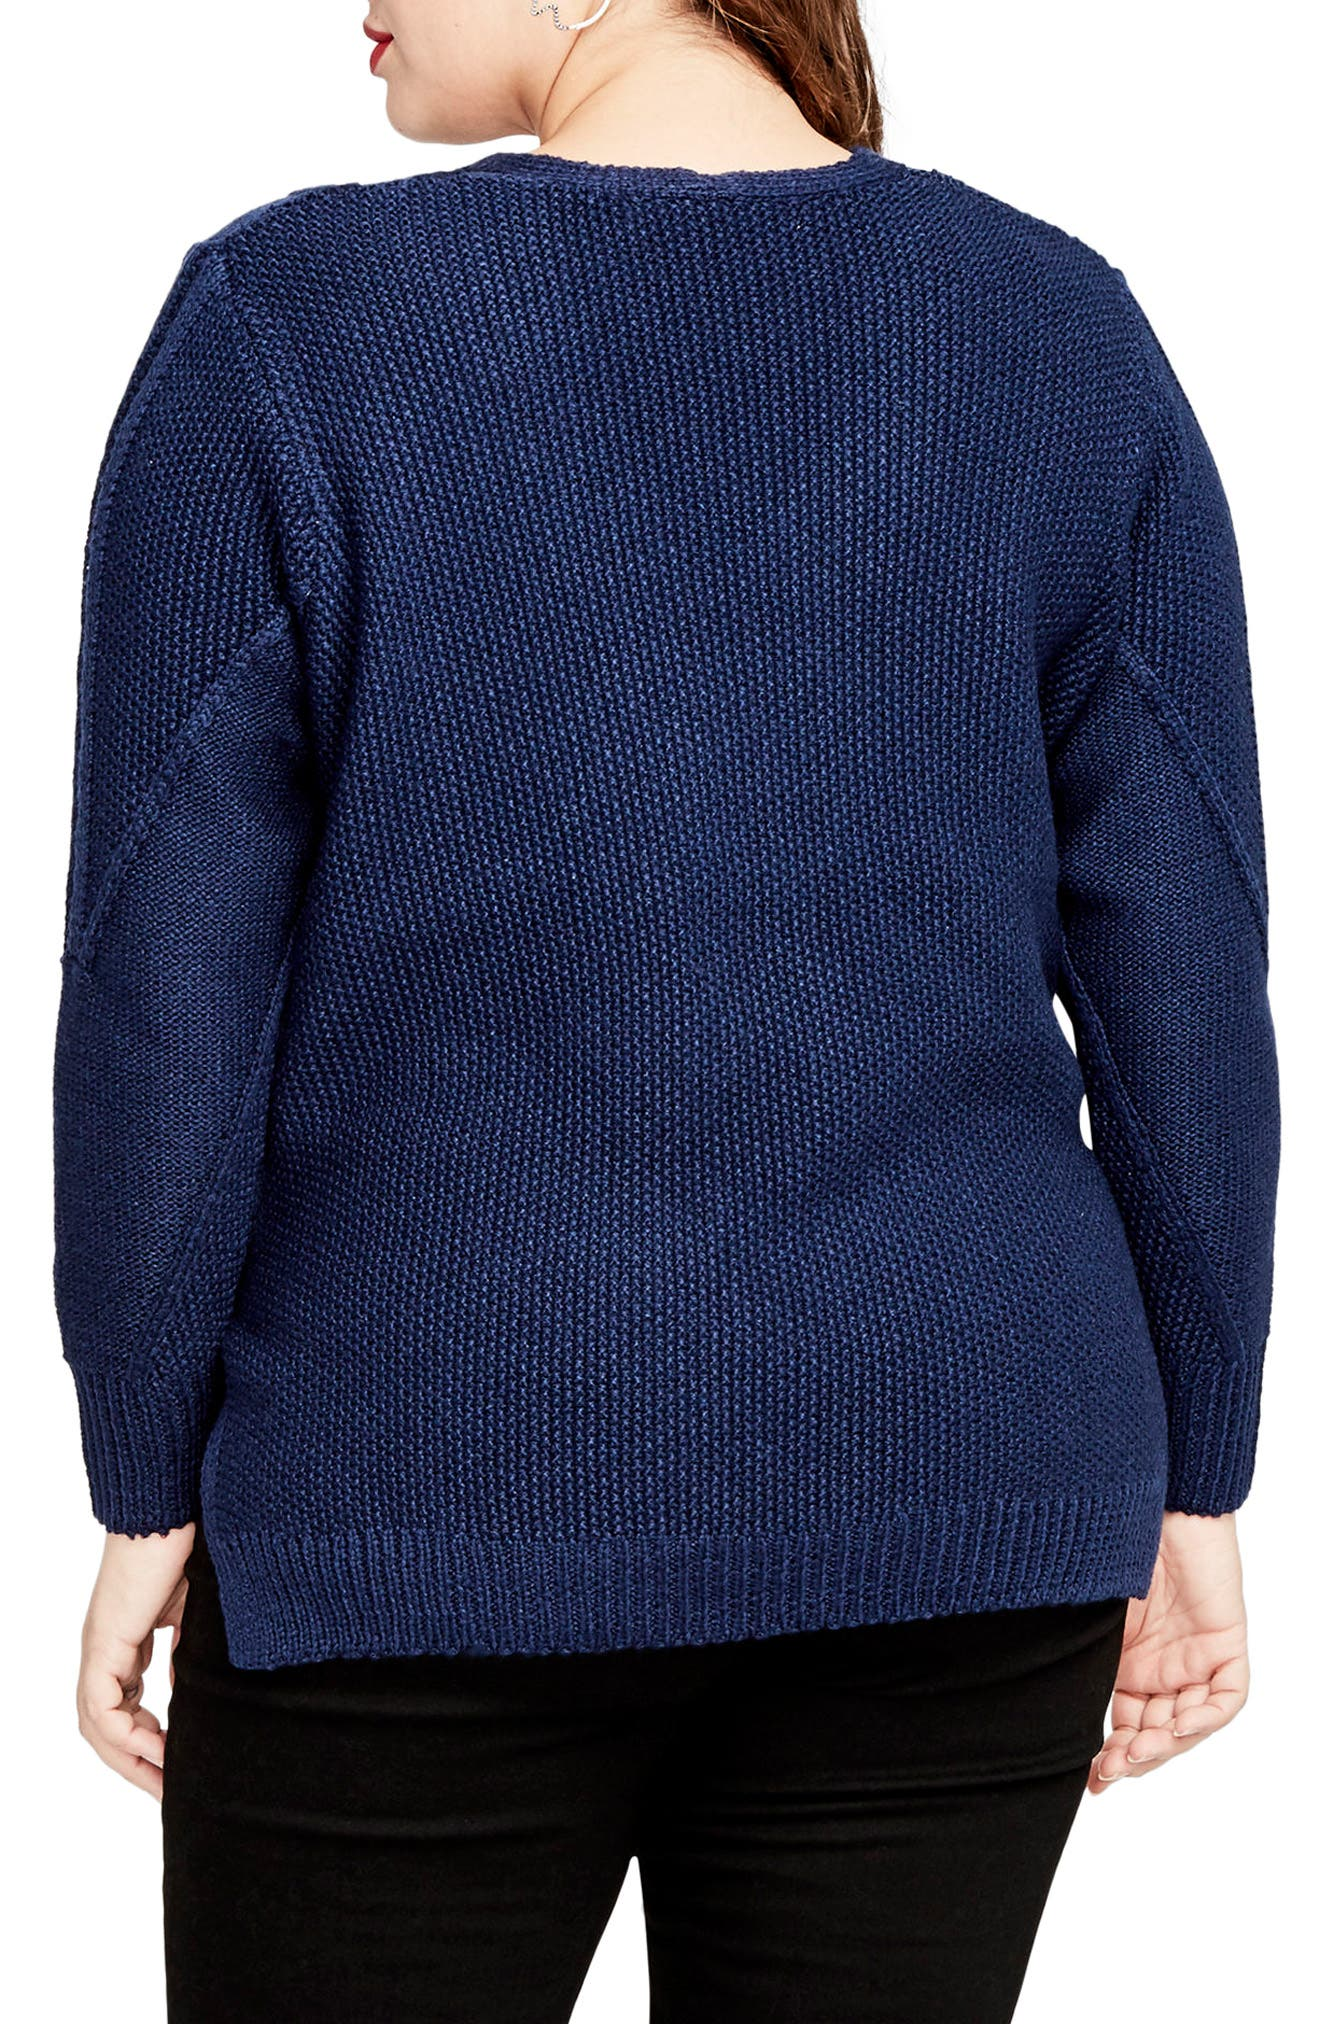 Mixed Cable Sweater,                             Alternate thumbnail 2, color,                             Blue Navy